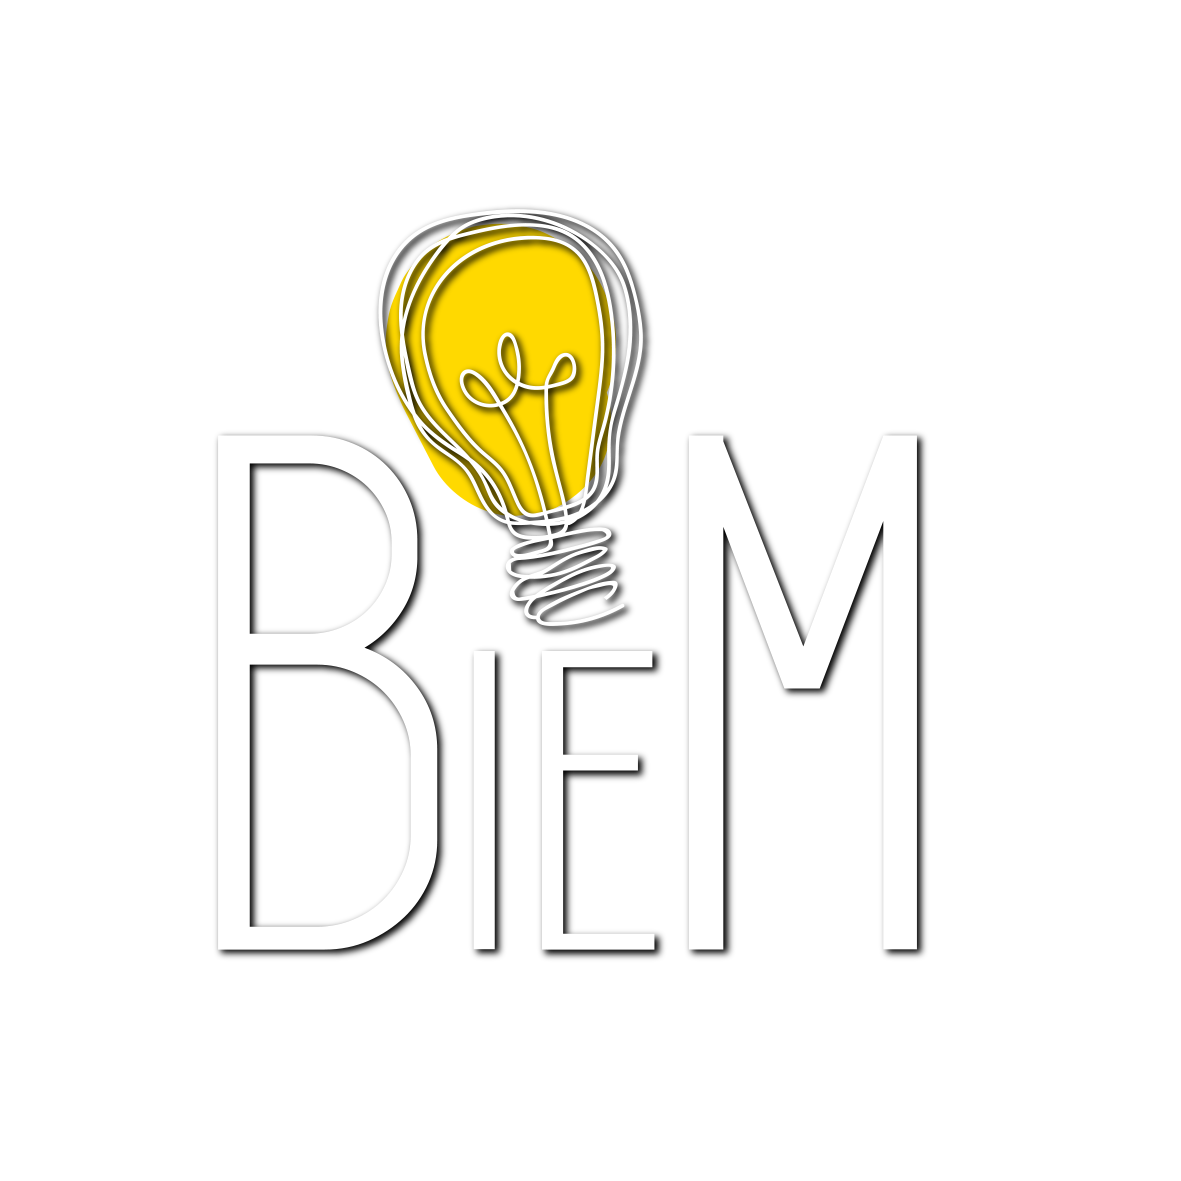 BieM Communication